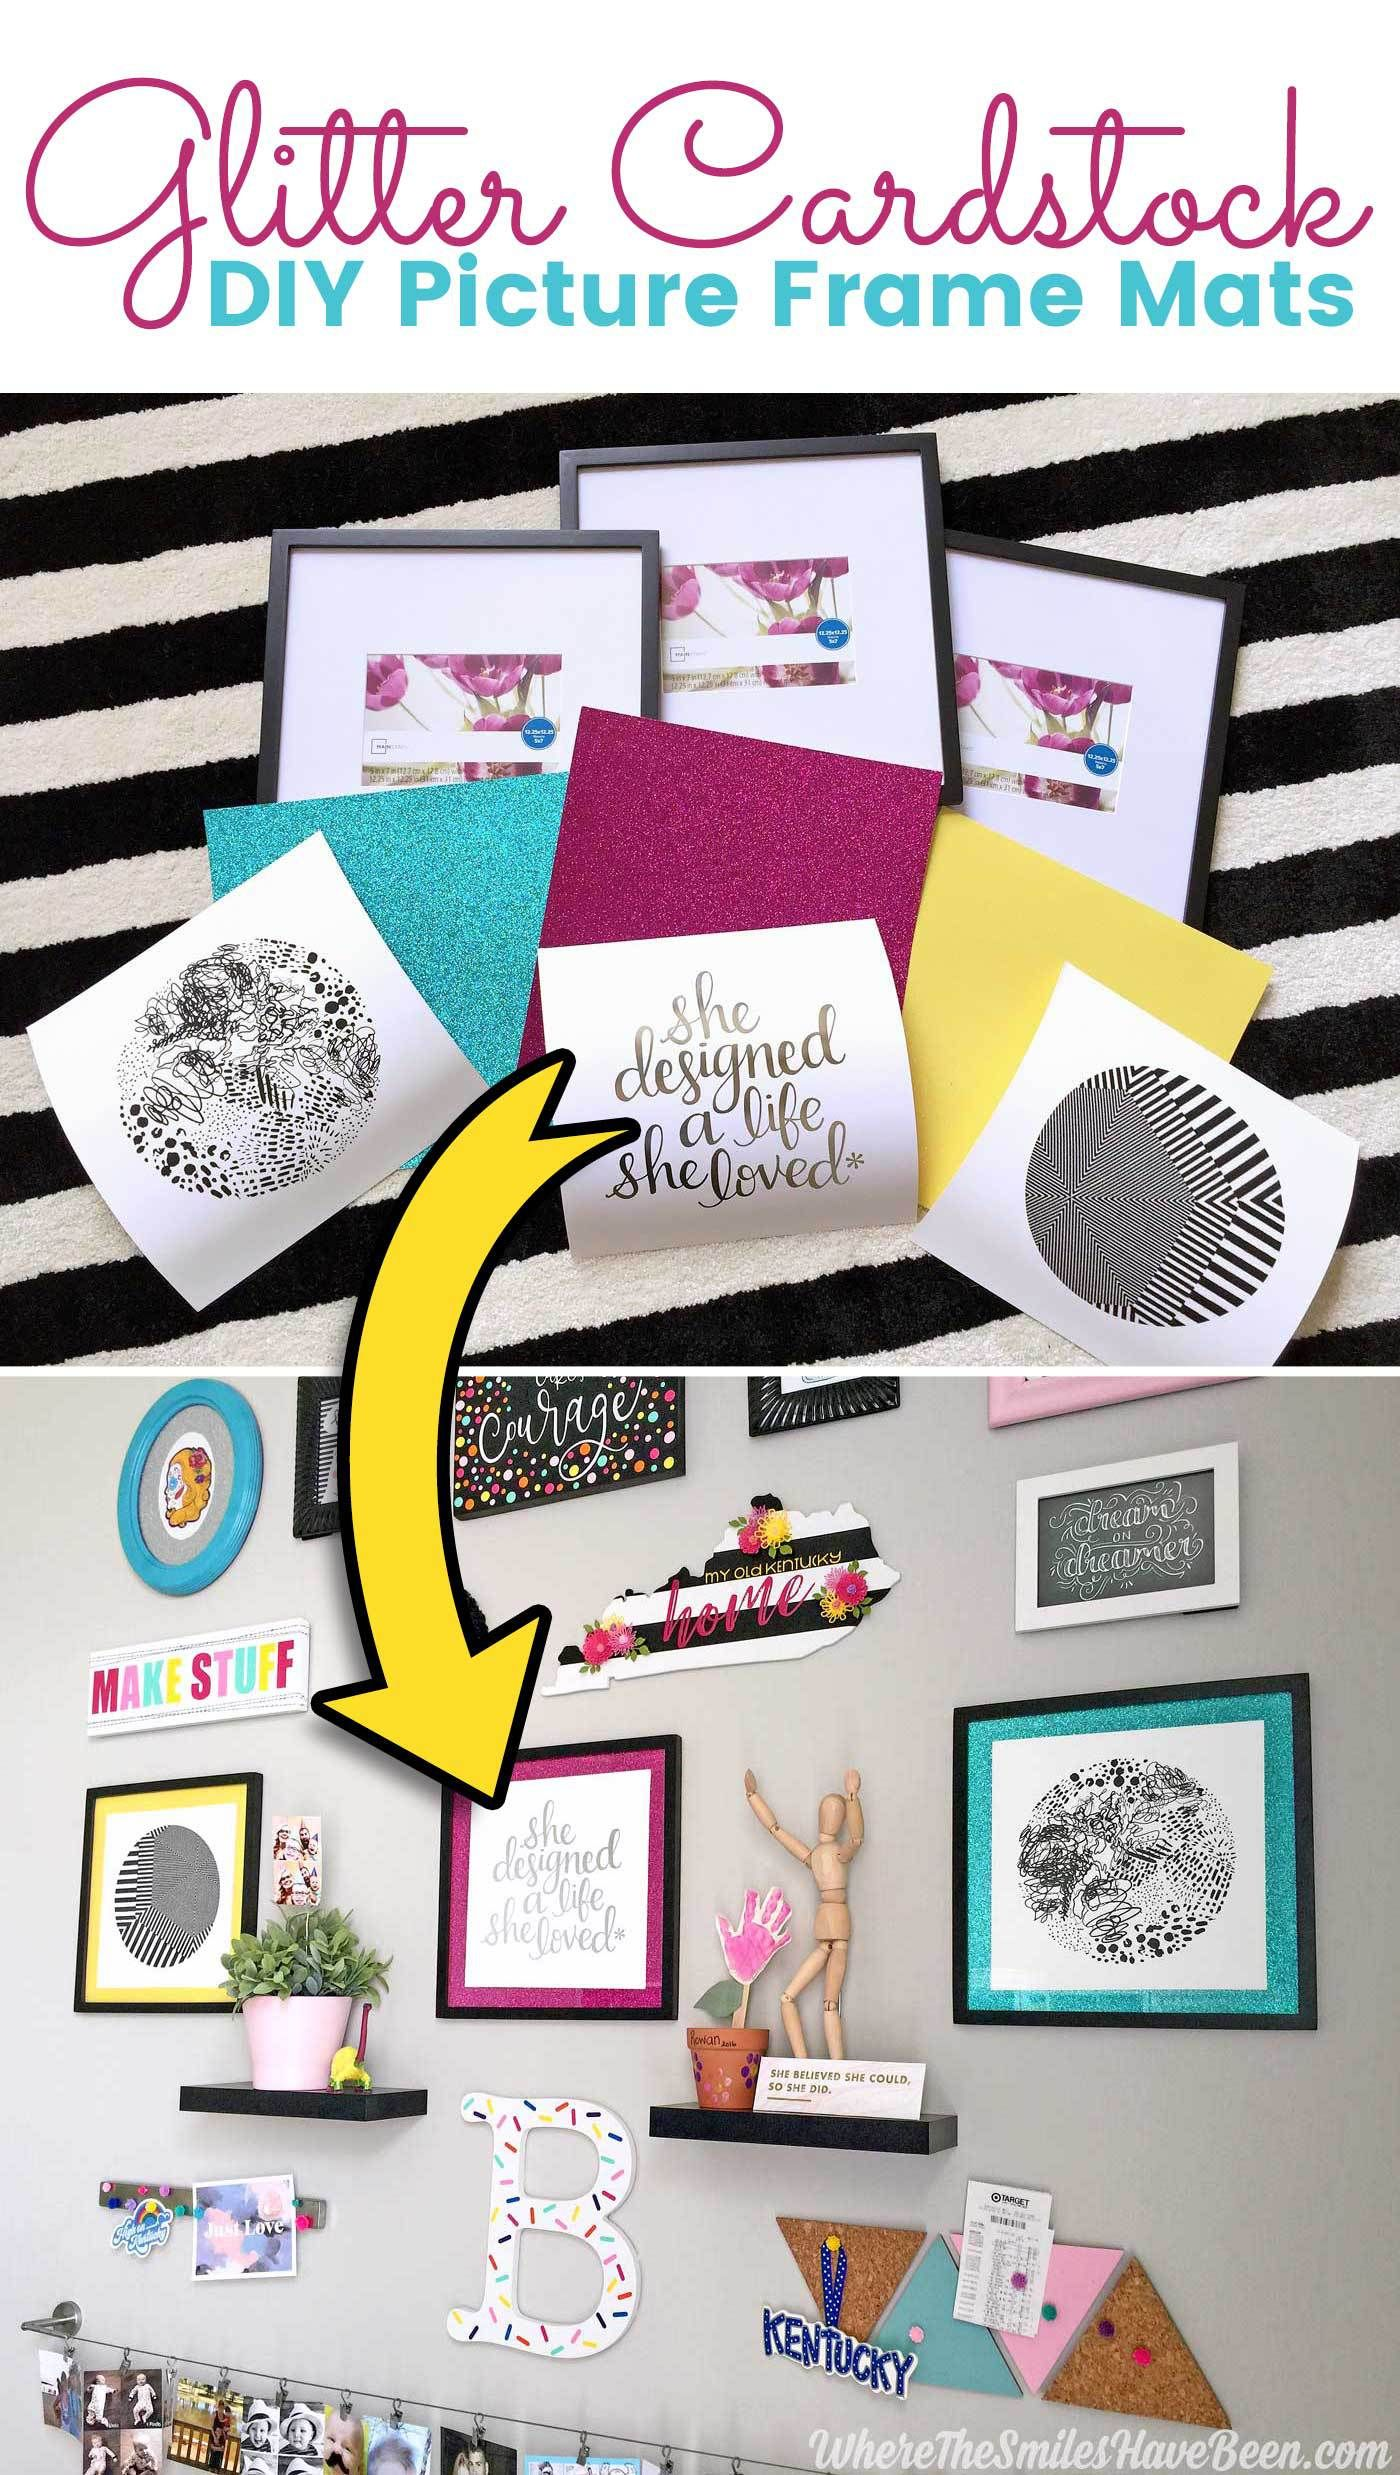 Easy Inexpensive Diy Picture Frame Mats From Glitter Cardstock Diy Kids Art Display Picture Frame Mat Diy Picture Frames